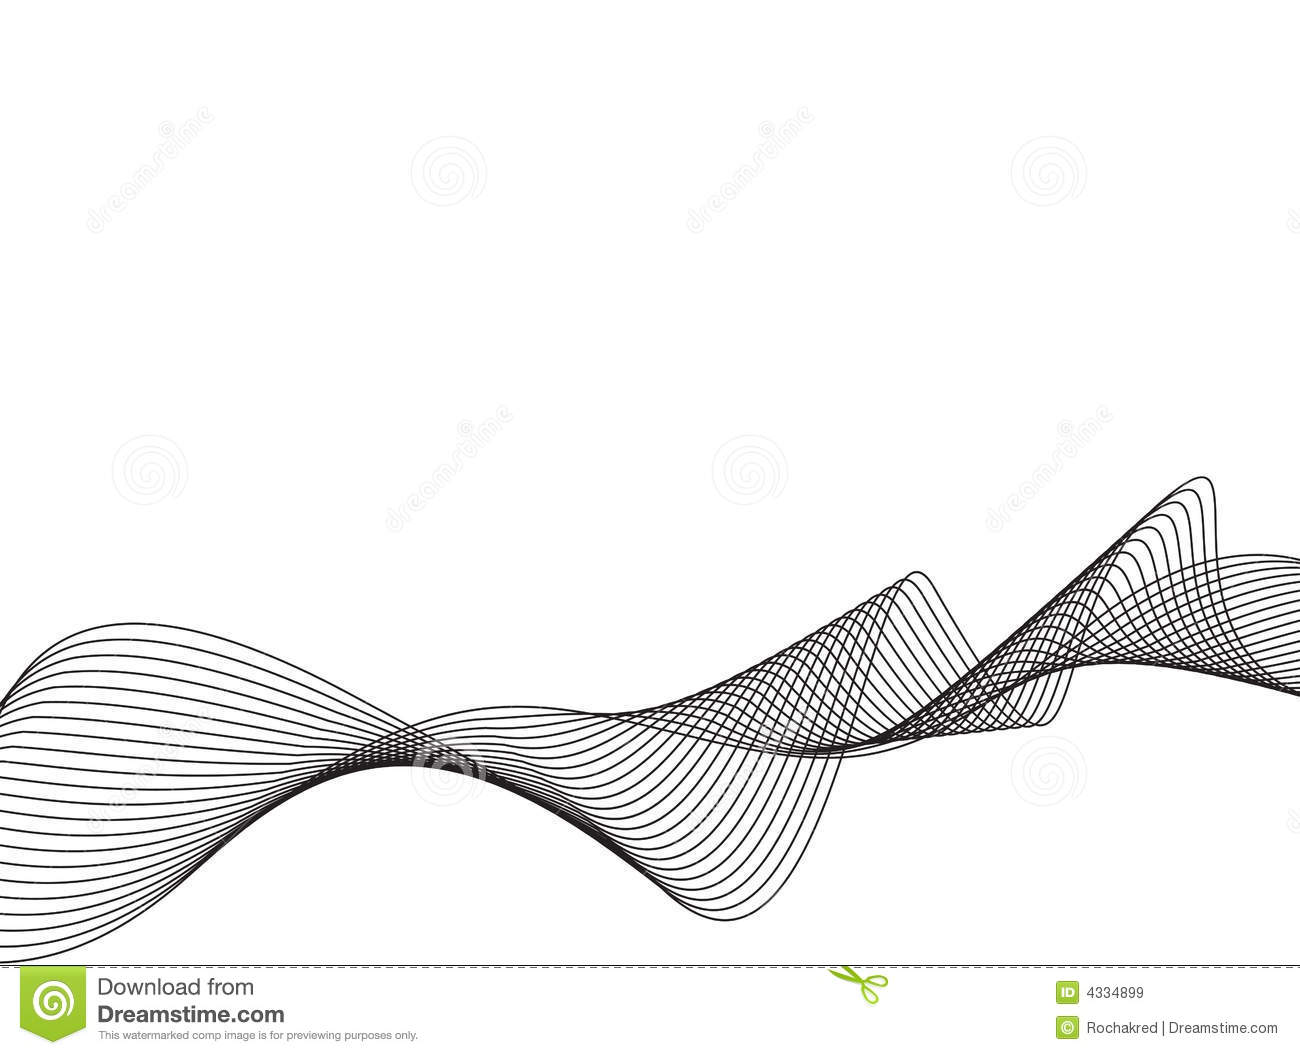 Vector Drawing Lines Java : Wave line vector images graphics ocean